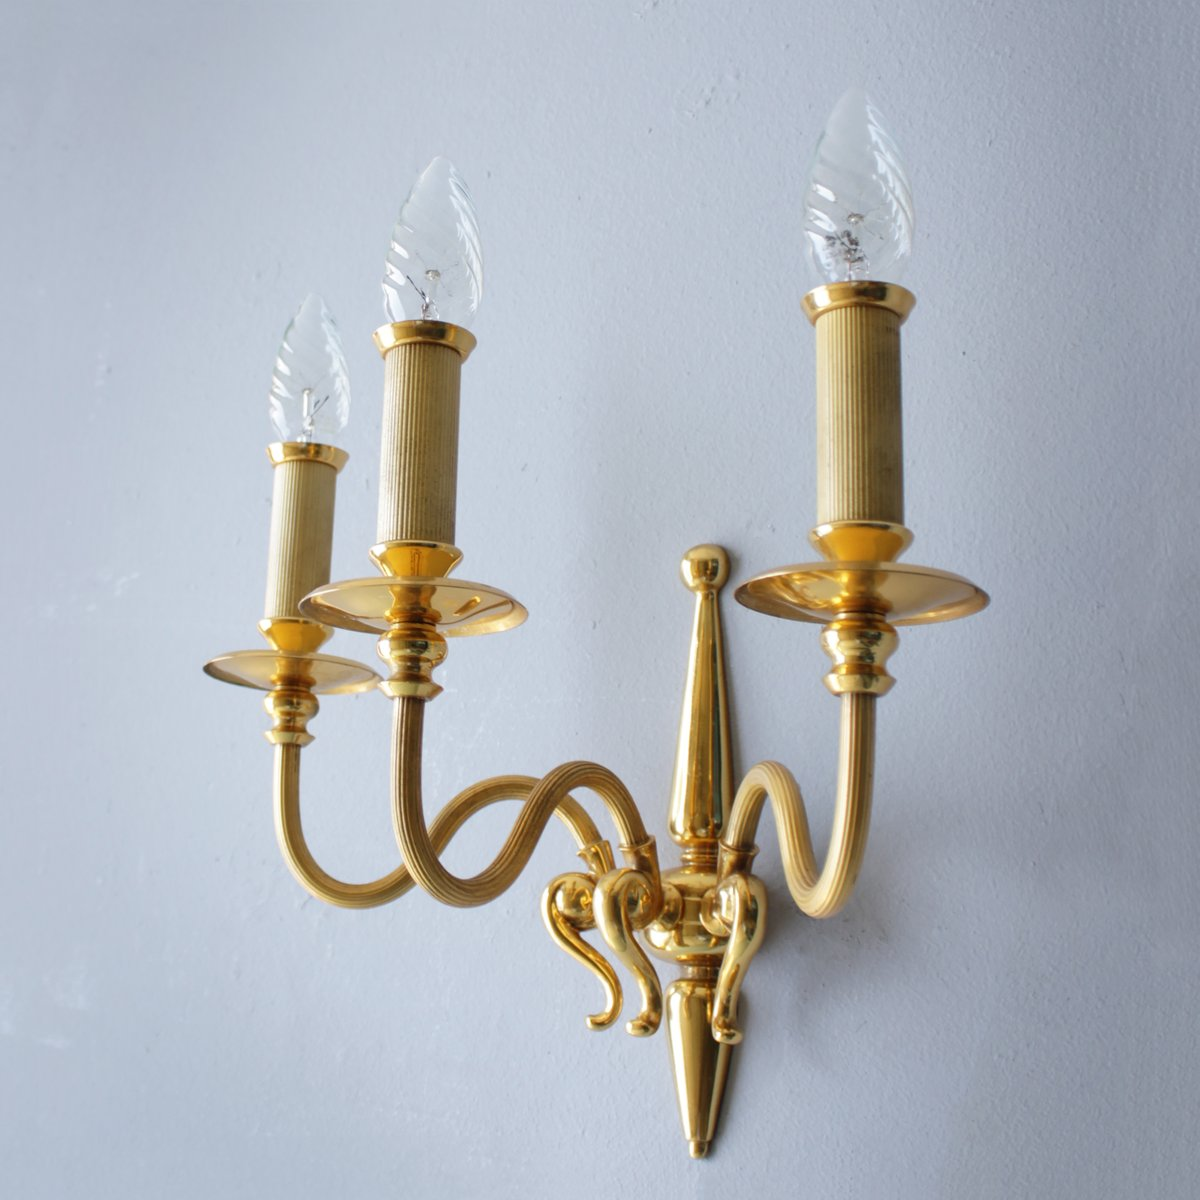 Gold Plated Wall Sconces from Lumi Milano, 1960, Set of 2 for sale at Pamono